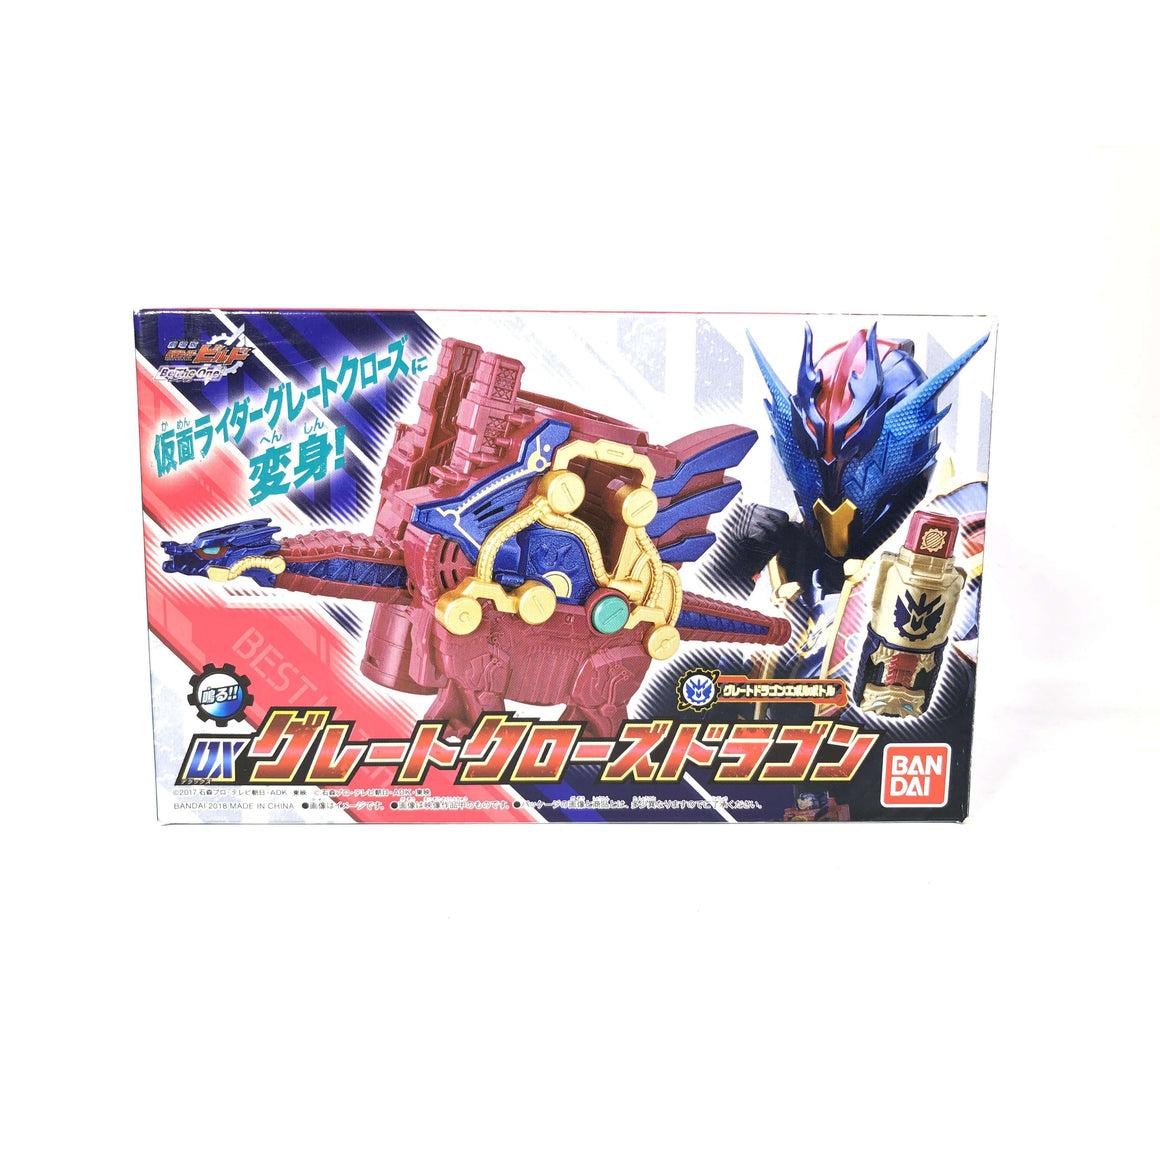 CSTOYS INTERNATIONAL:3000000419182[BOXED] Kamen Rider Build: DX Great Cross Dragon